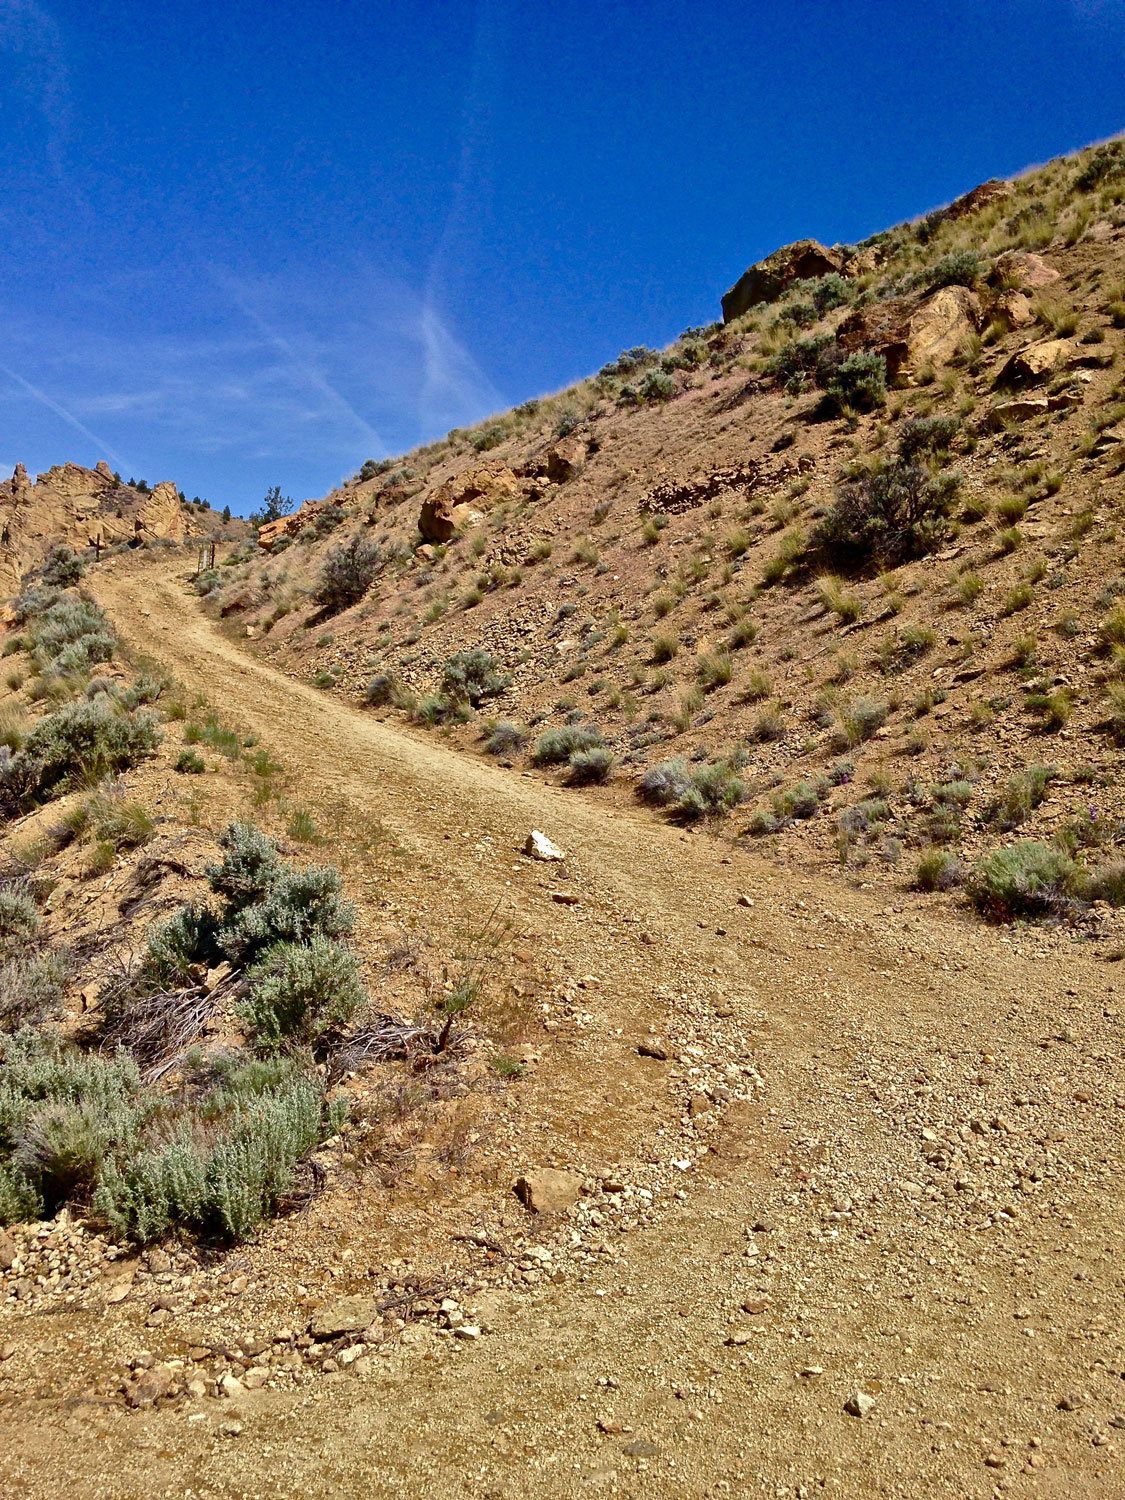 The Burma Road outside of Smith Rock State Park continues to climb in full sun.